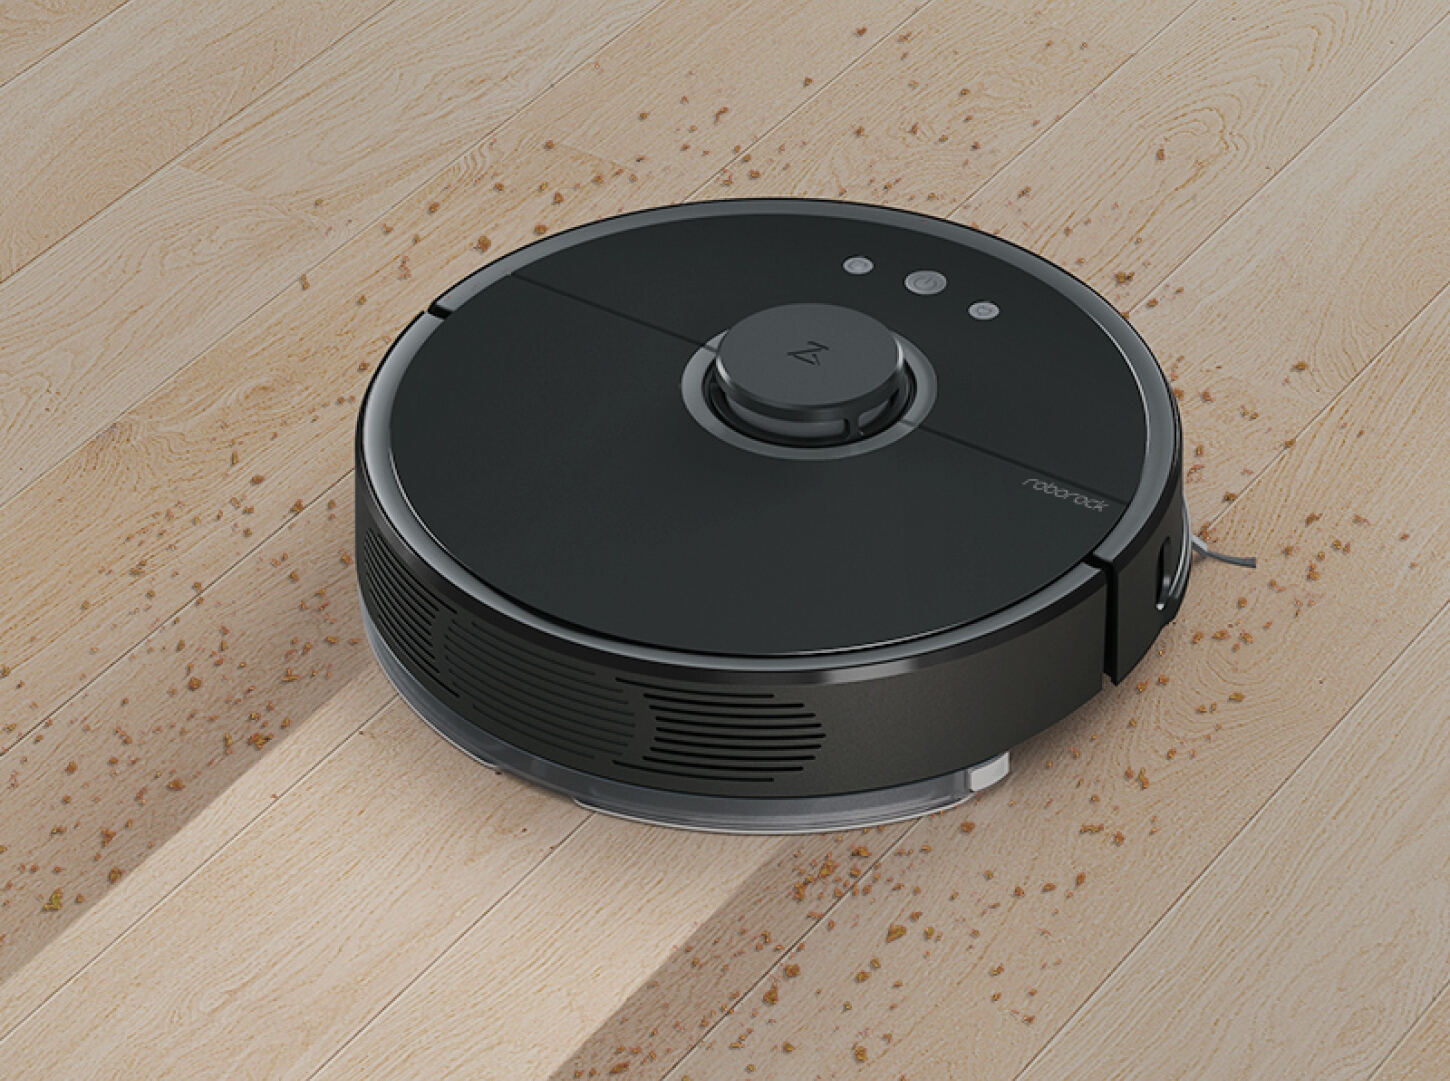 Робот-пилосос RoboRock Sweep One Vacuum Cleaner на підлозі